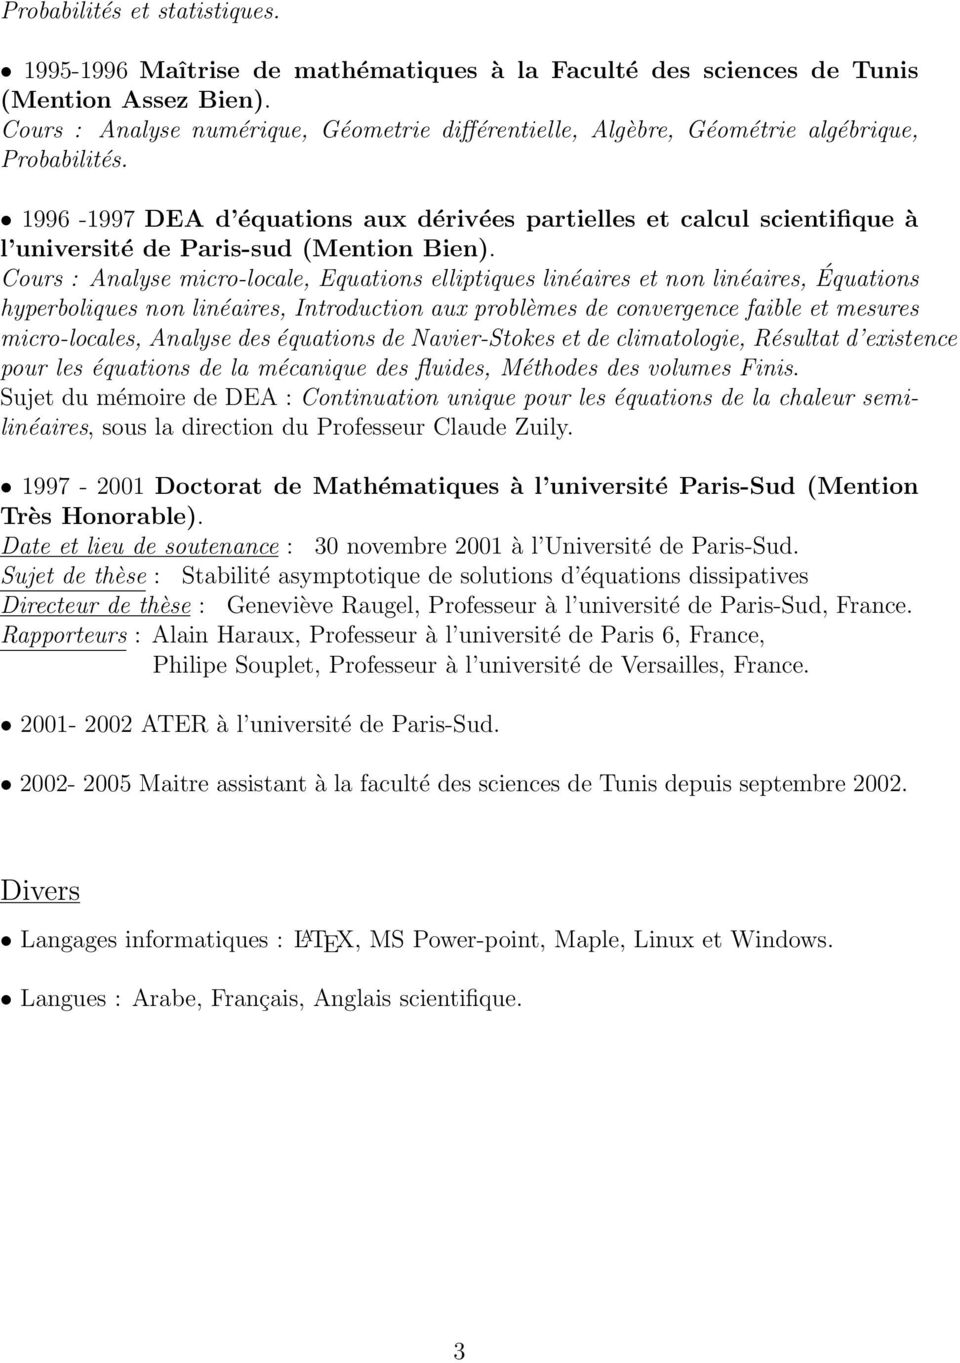 1996-1997 DEA d équations aux dérivées partielles et calcul scientifique à l université de Paris-sud (Mention Bien).